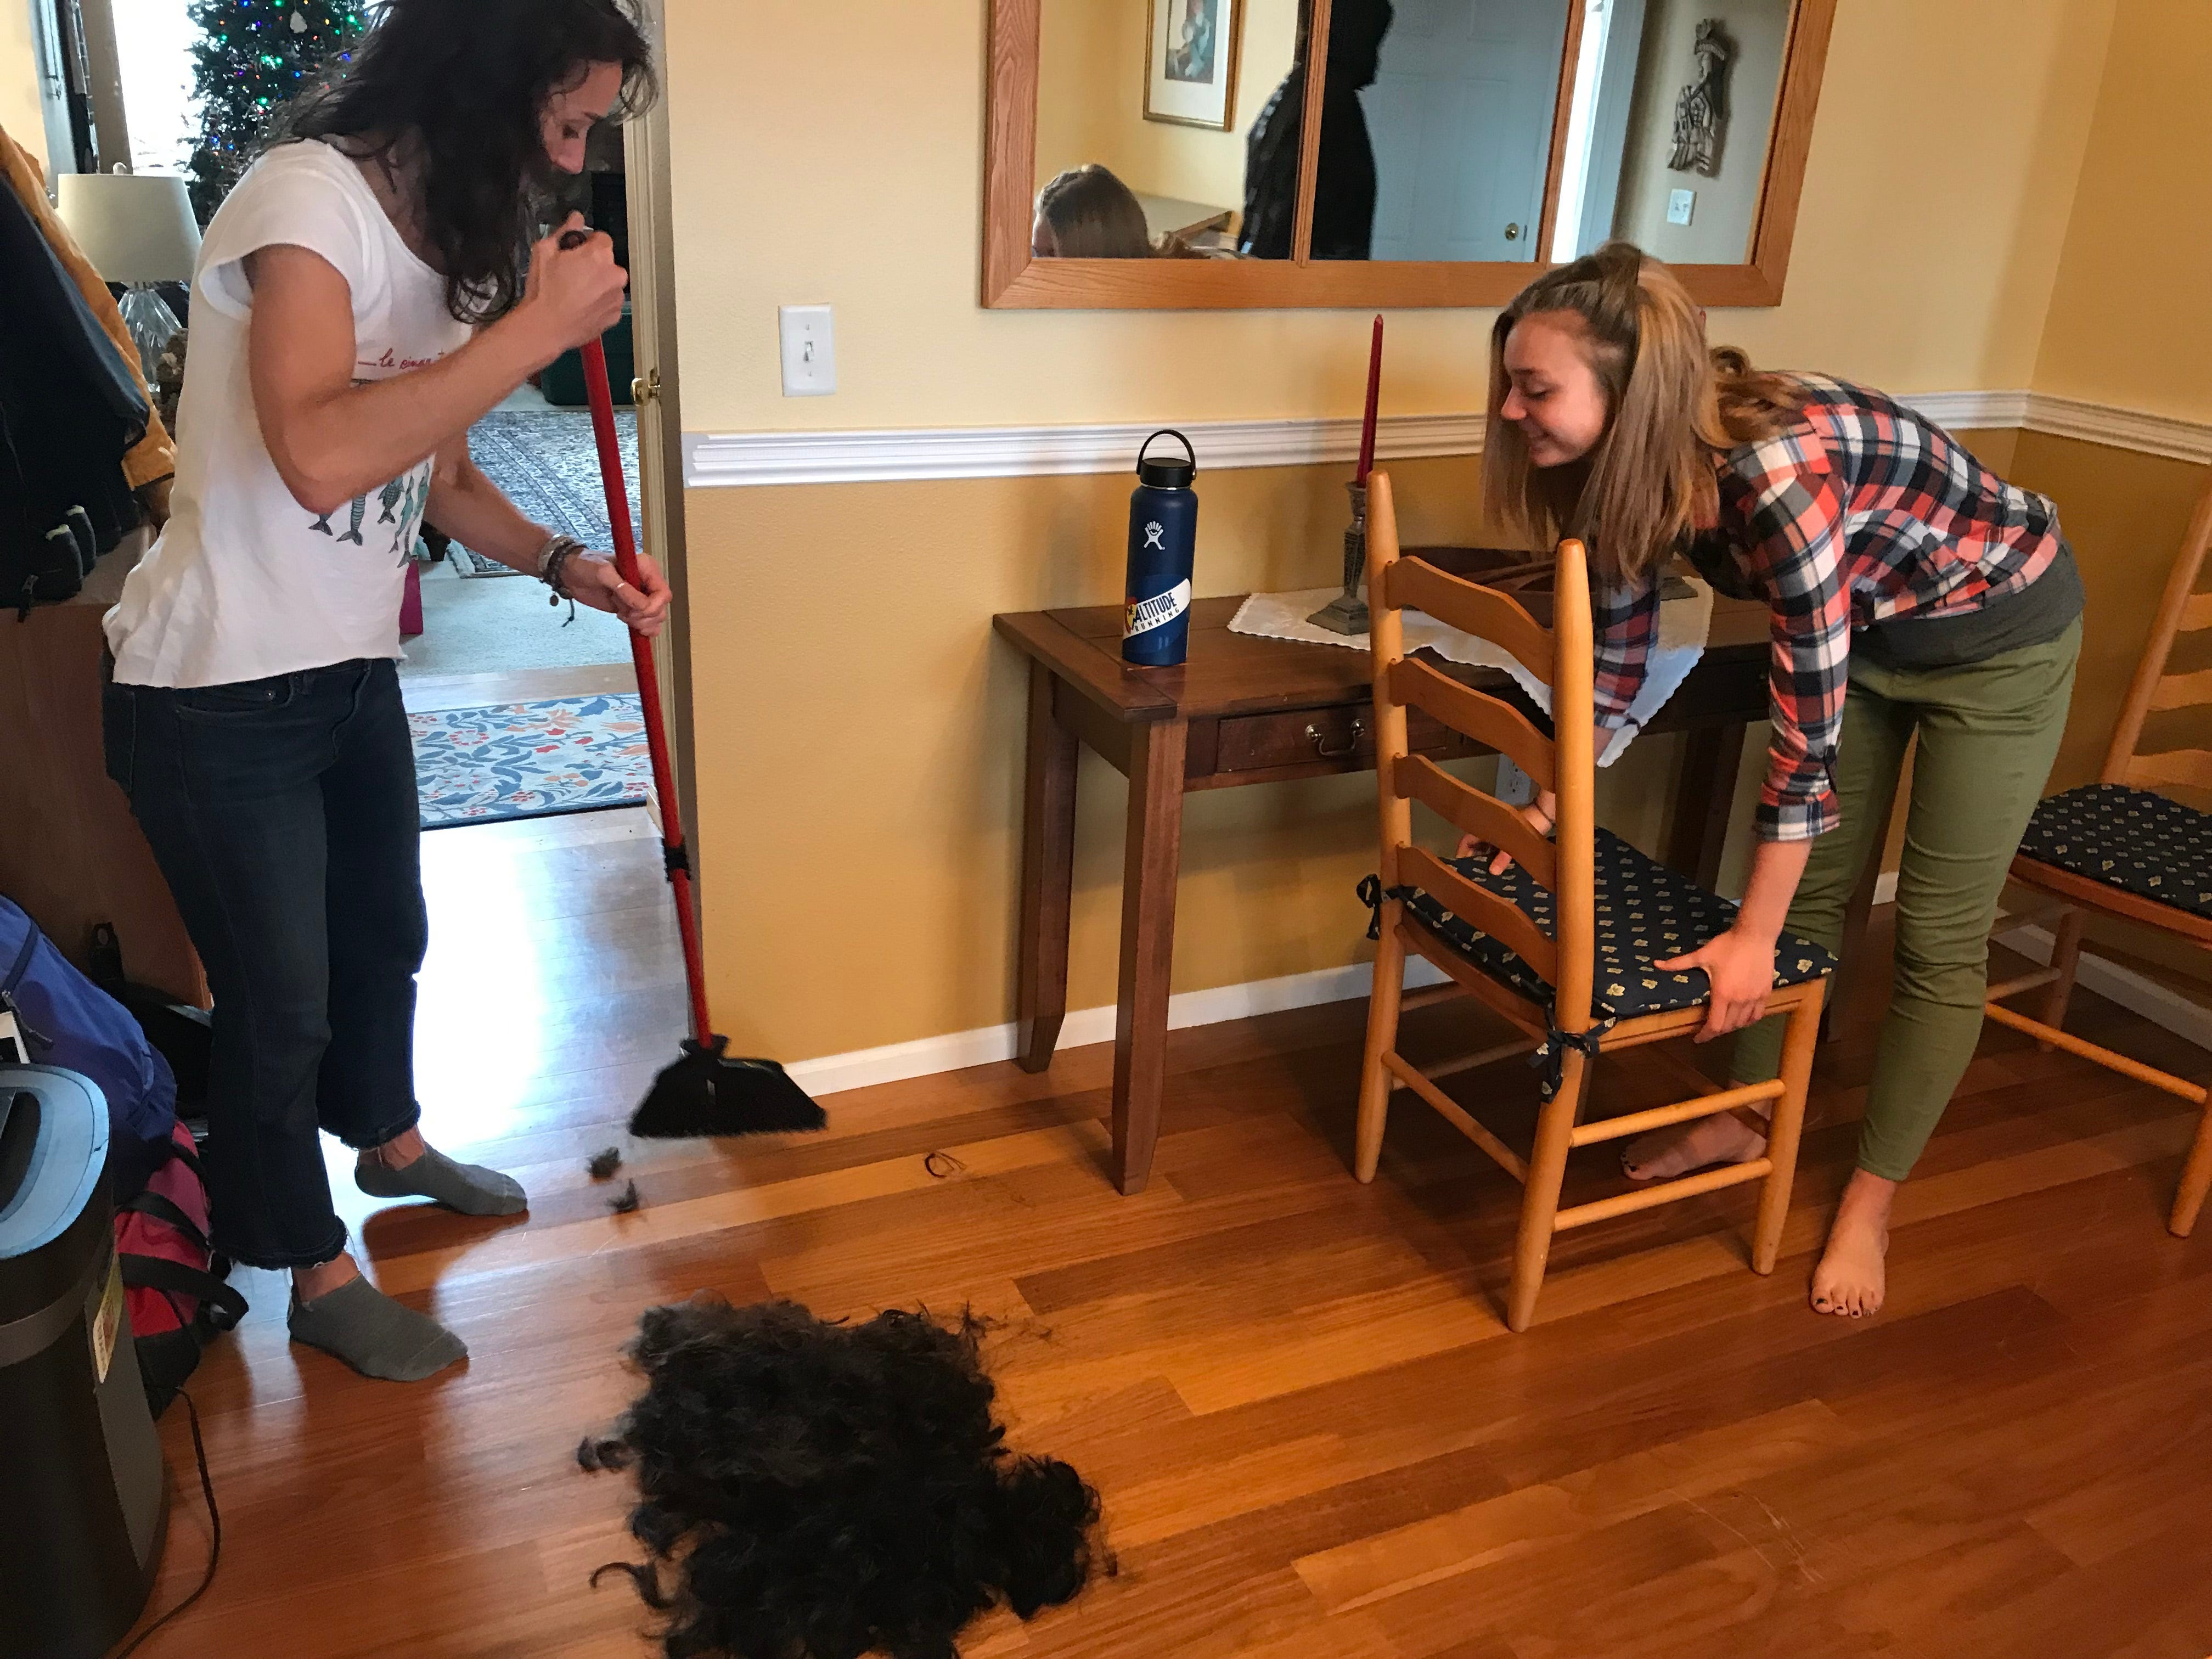 Margaret Urynowicz sweeps up hair from the shaved heads of Rocky Mountain basketball players as daughter Elizabeth looks on.